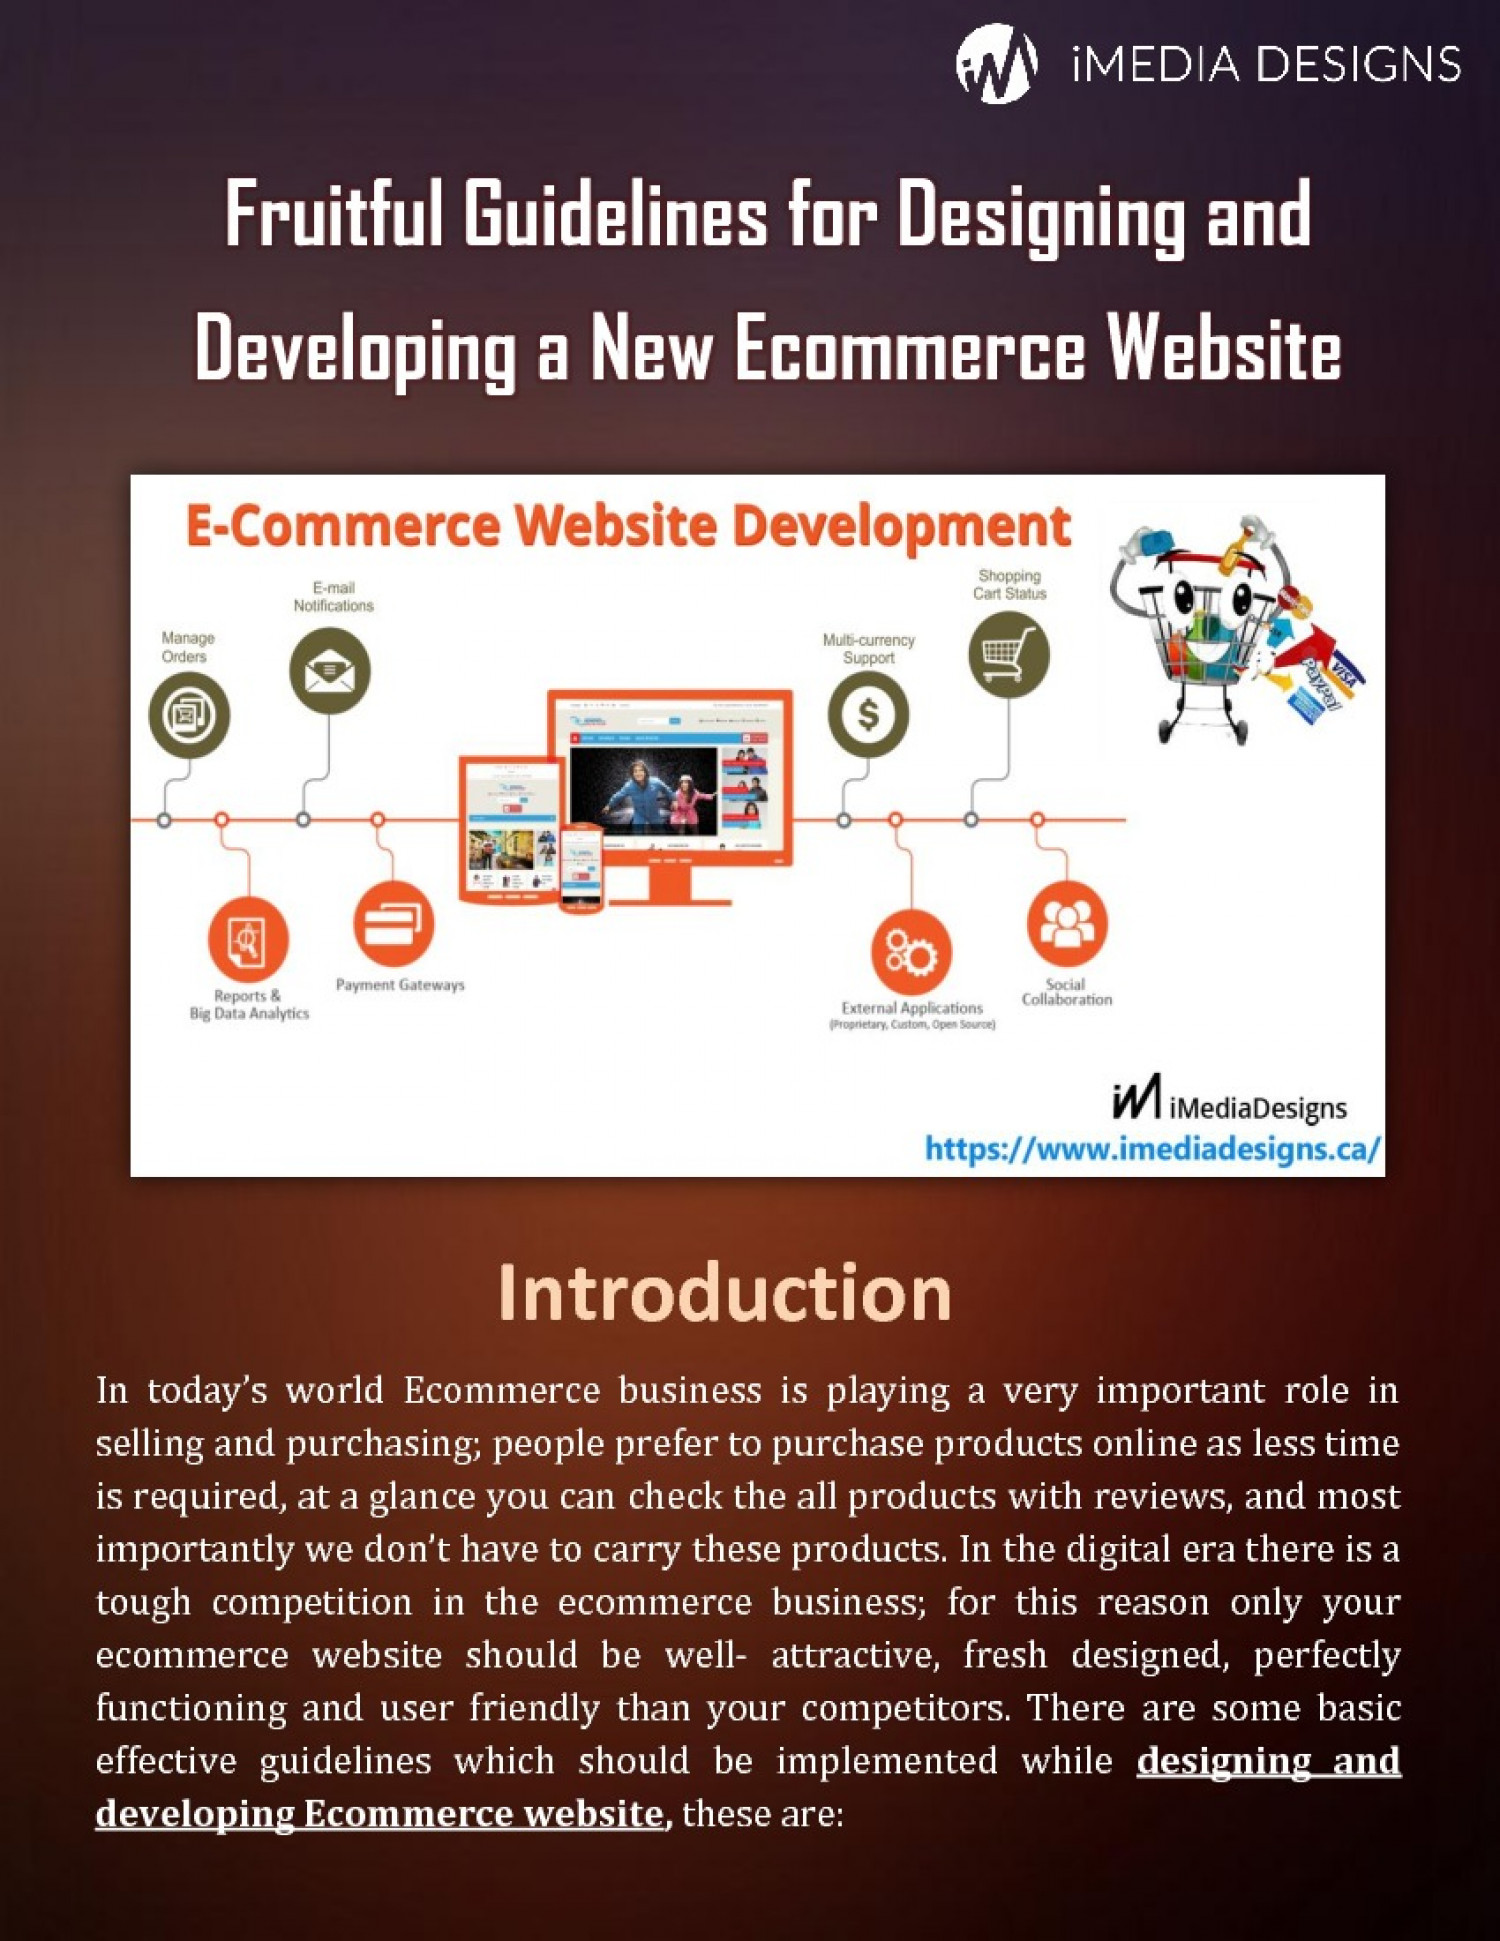 Fruitful Guidelines for Designing and Developing a New Ecommerce Website Infographic